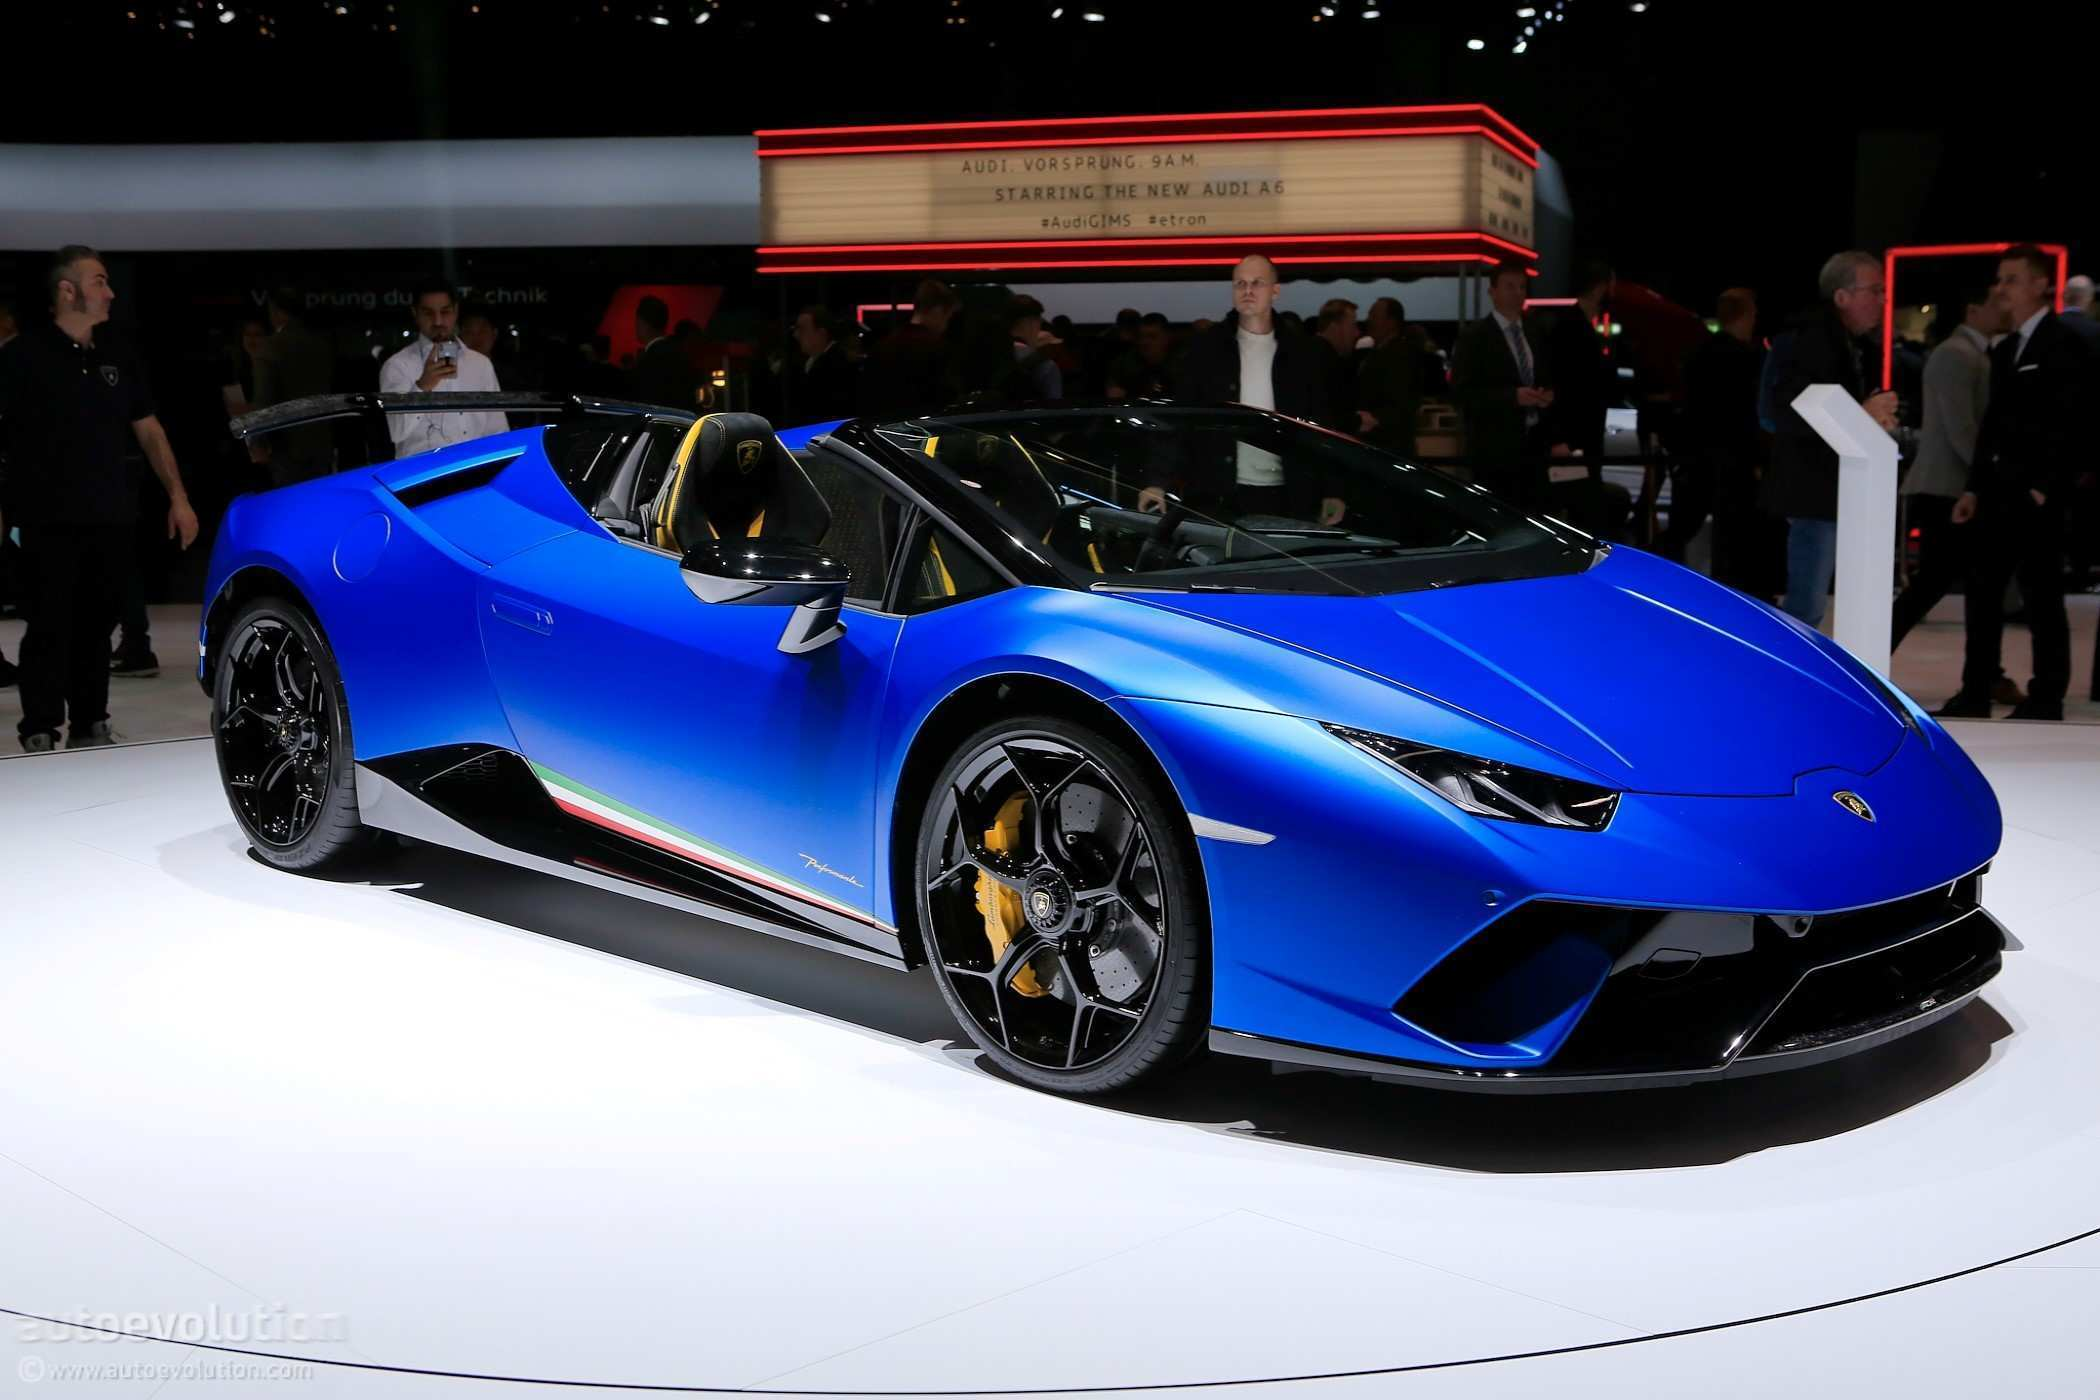 39 Gallery of 2019 Lamborghini Huracan Performante New Review with 2019 Lamborghini Huracan Performante